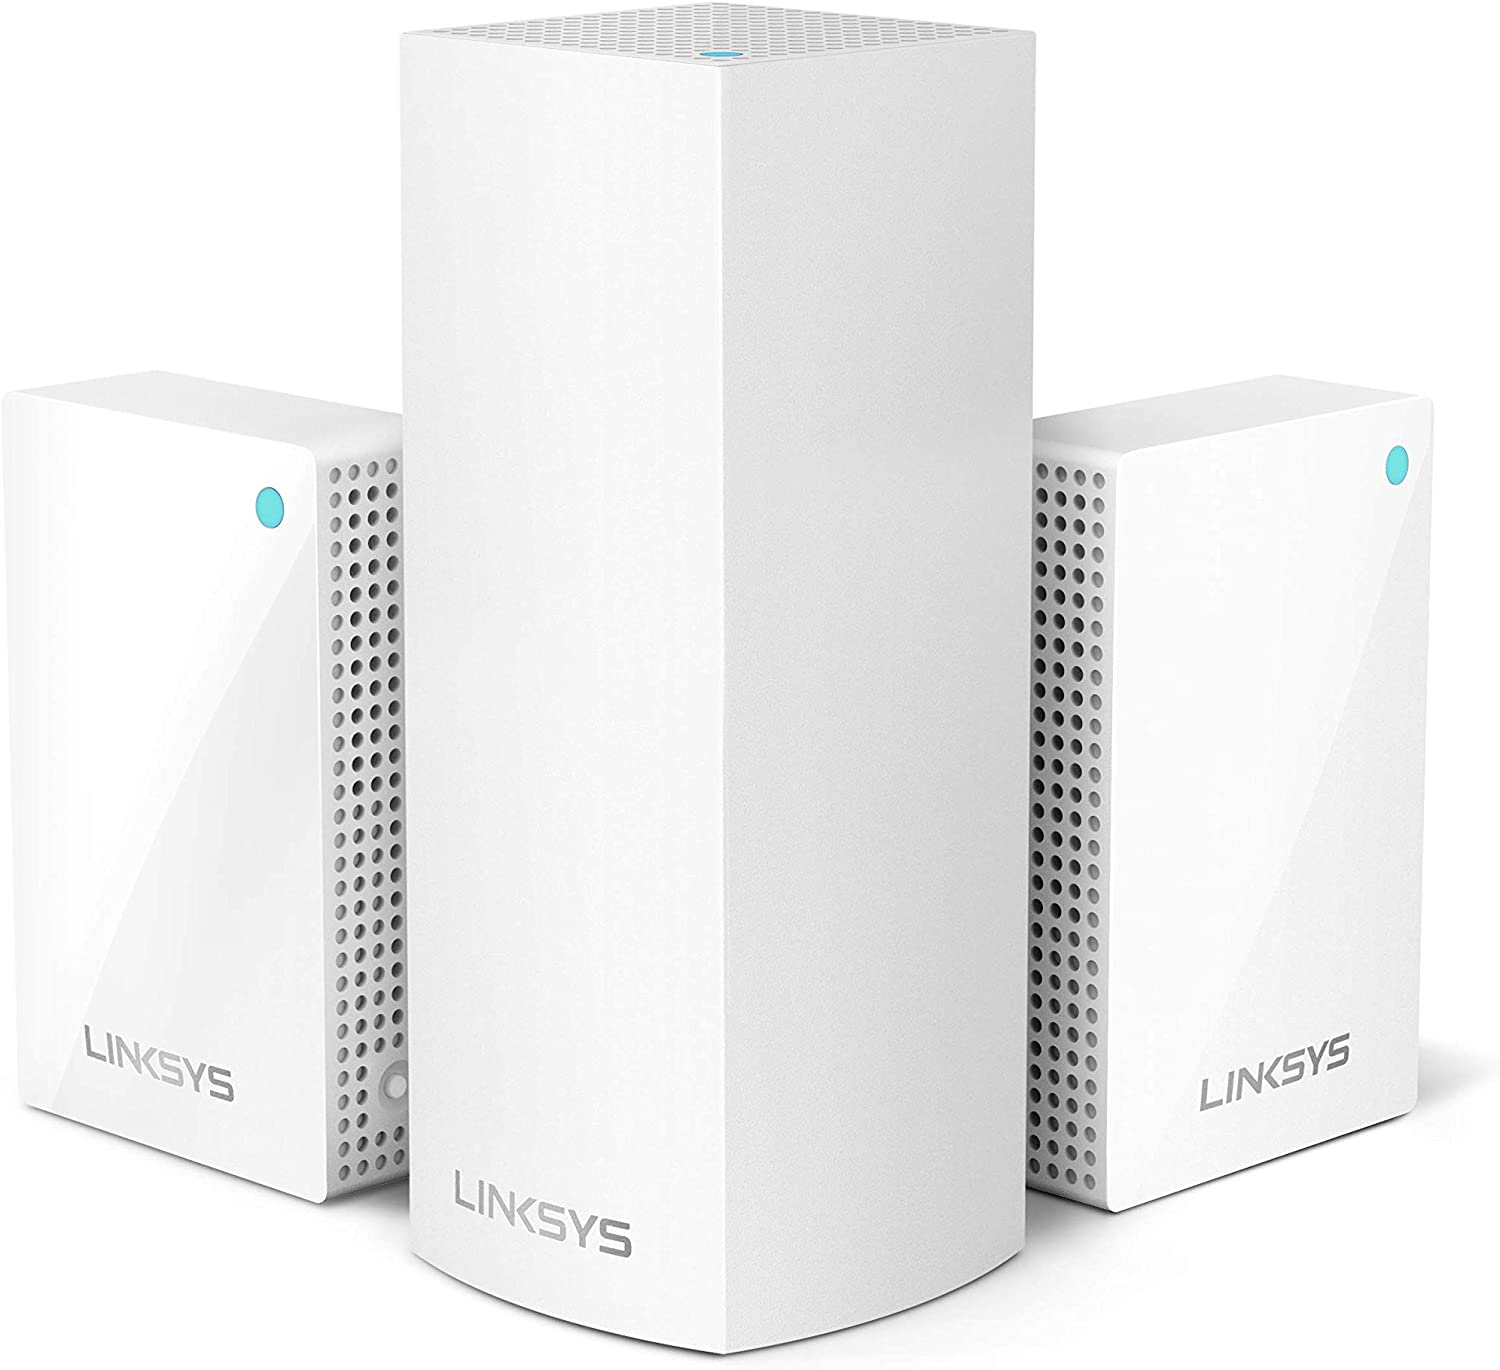 Linksys WHW0203P Velop Plug-in Home Mesh WiFi System Bundle (Dual/Tri-Band Combo) - WiFi Router/WiFi Extender for Whole-Home Mesh Network (3-Pack, White)